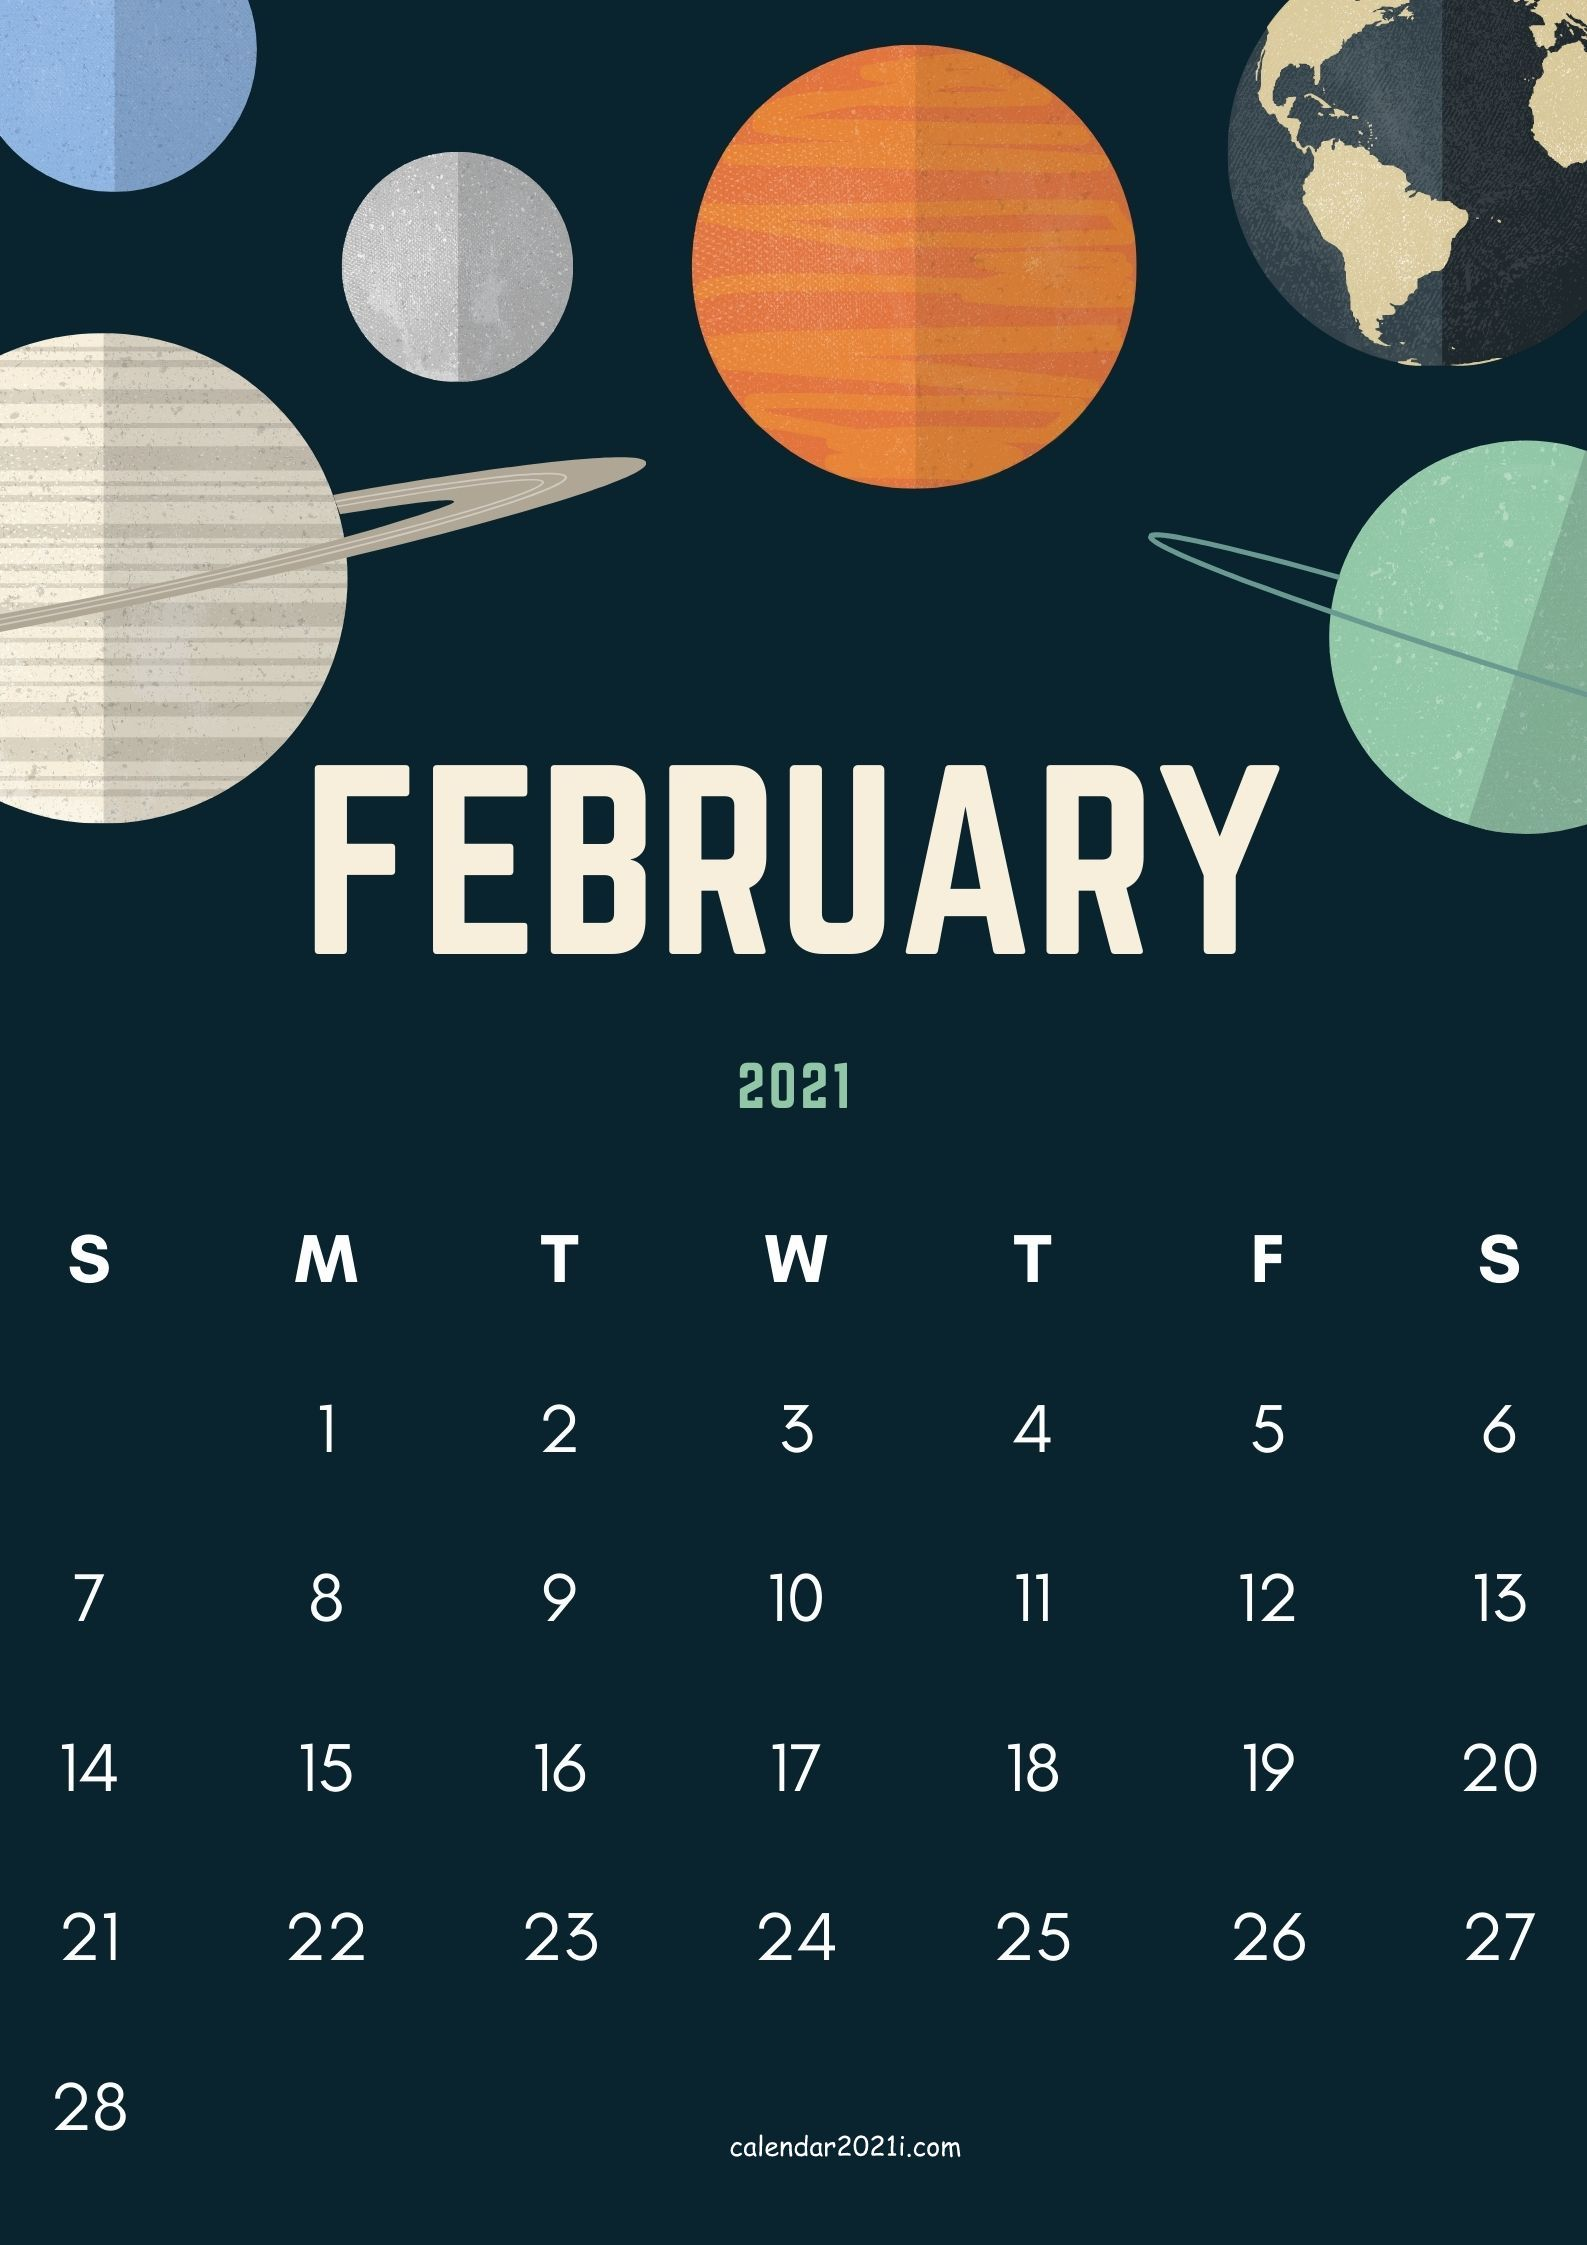 February 2021 Calendar Printable Floral Holidays Wallpaper 1587x2245